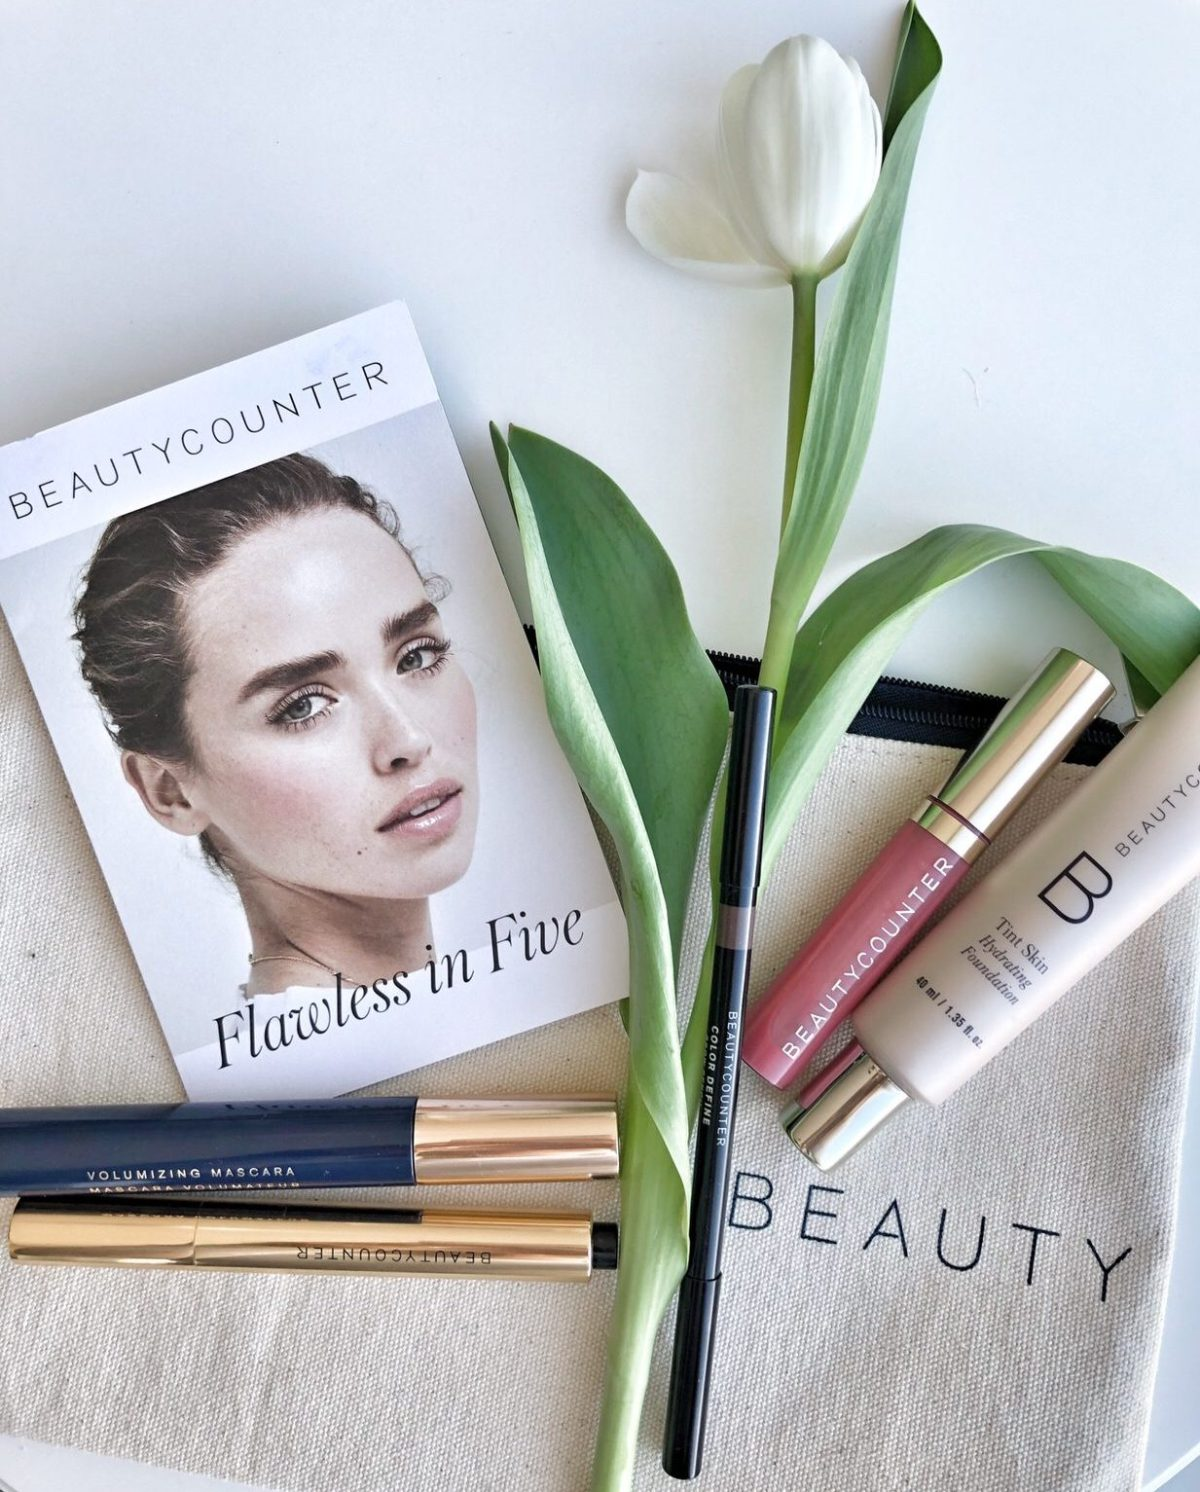 flawless in five makeup review